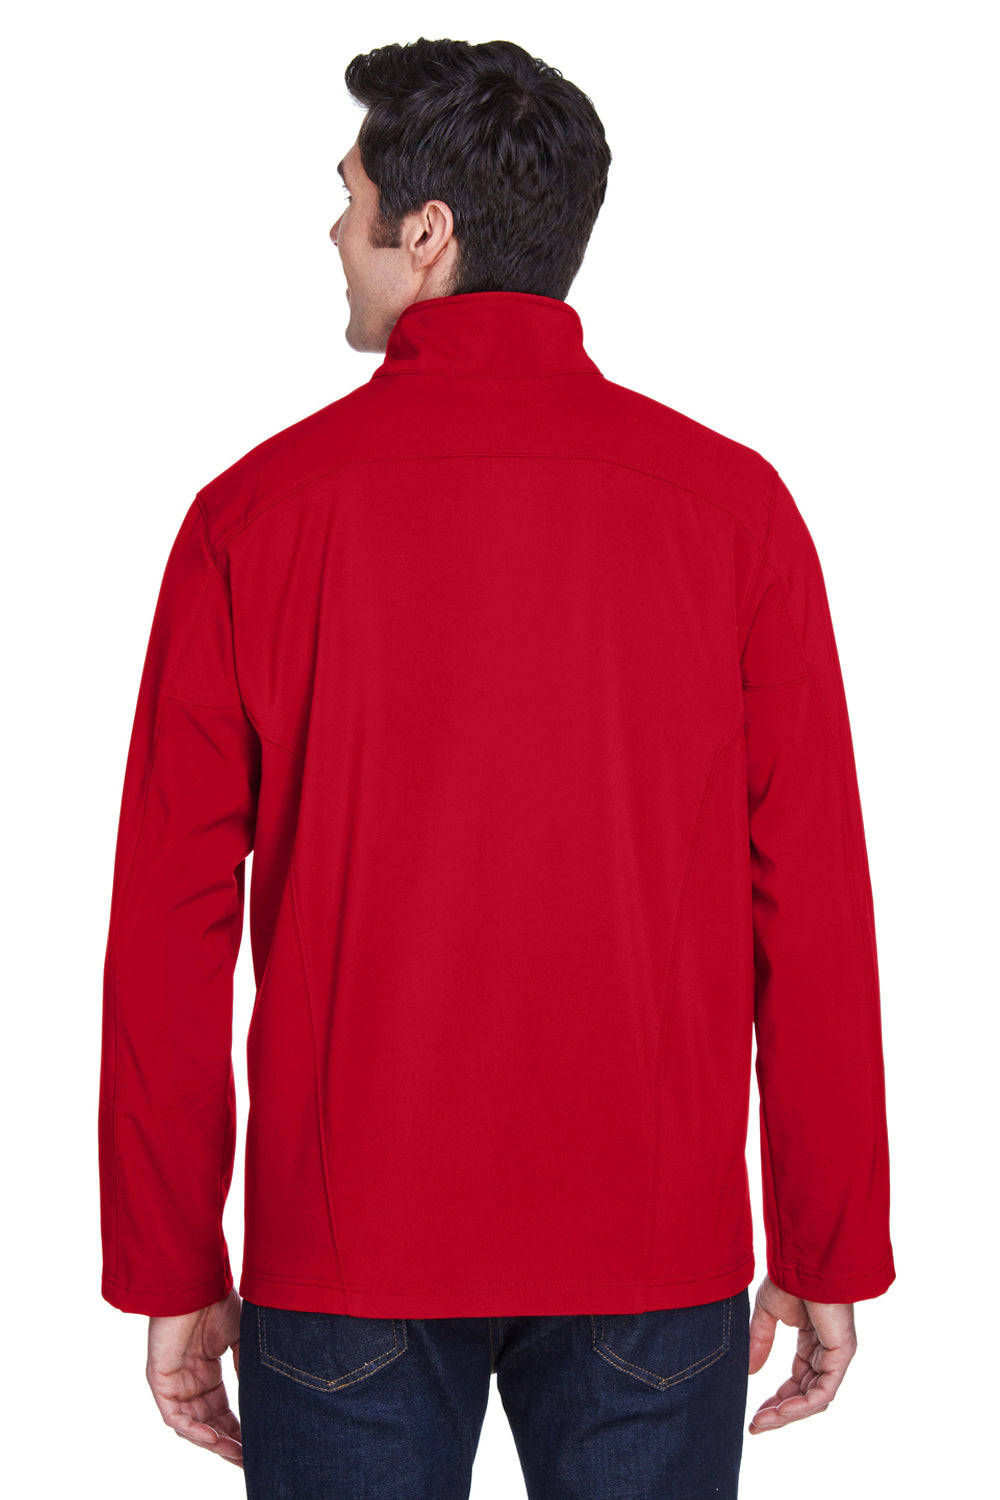 Core 365 88184 Mens Cruise Water Resistant Full Zip Jacket Red Back